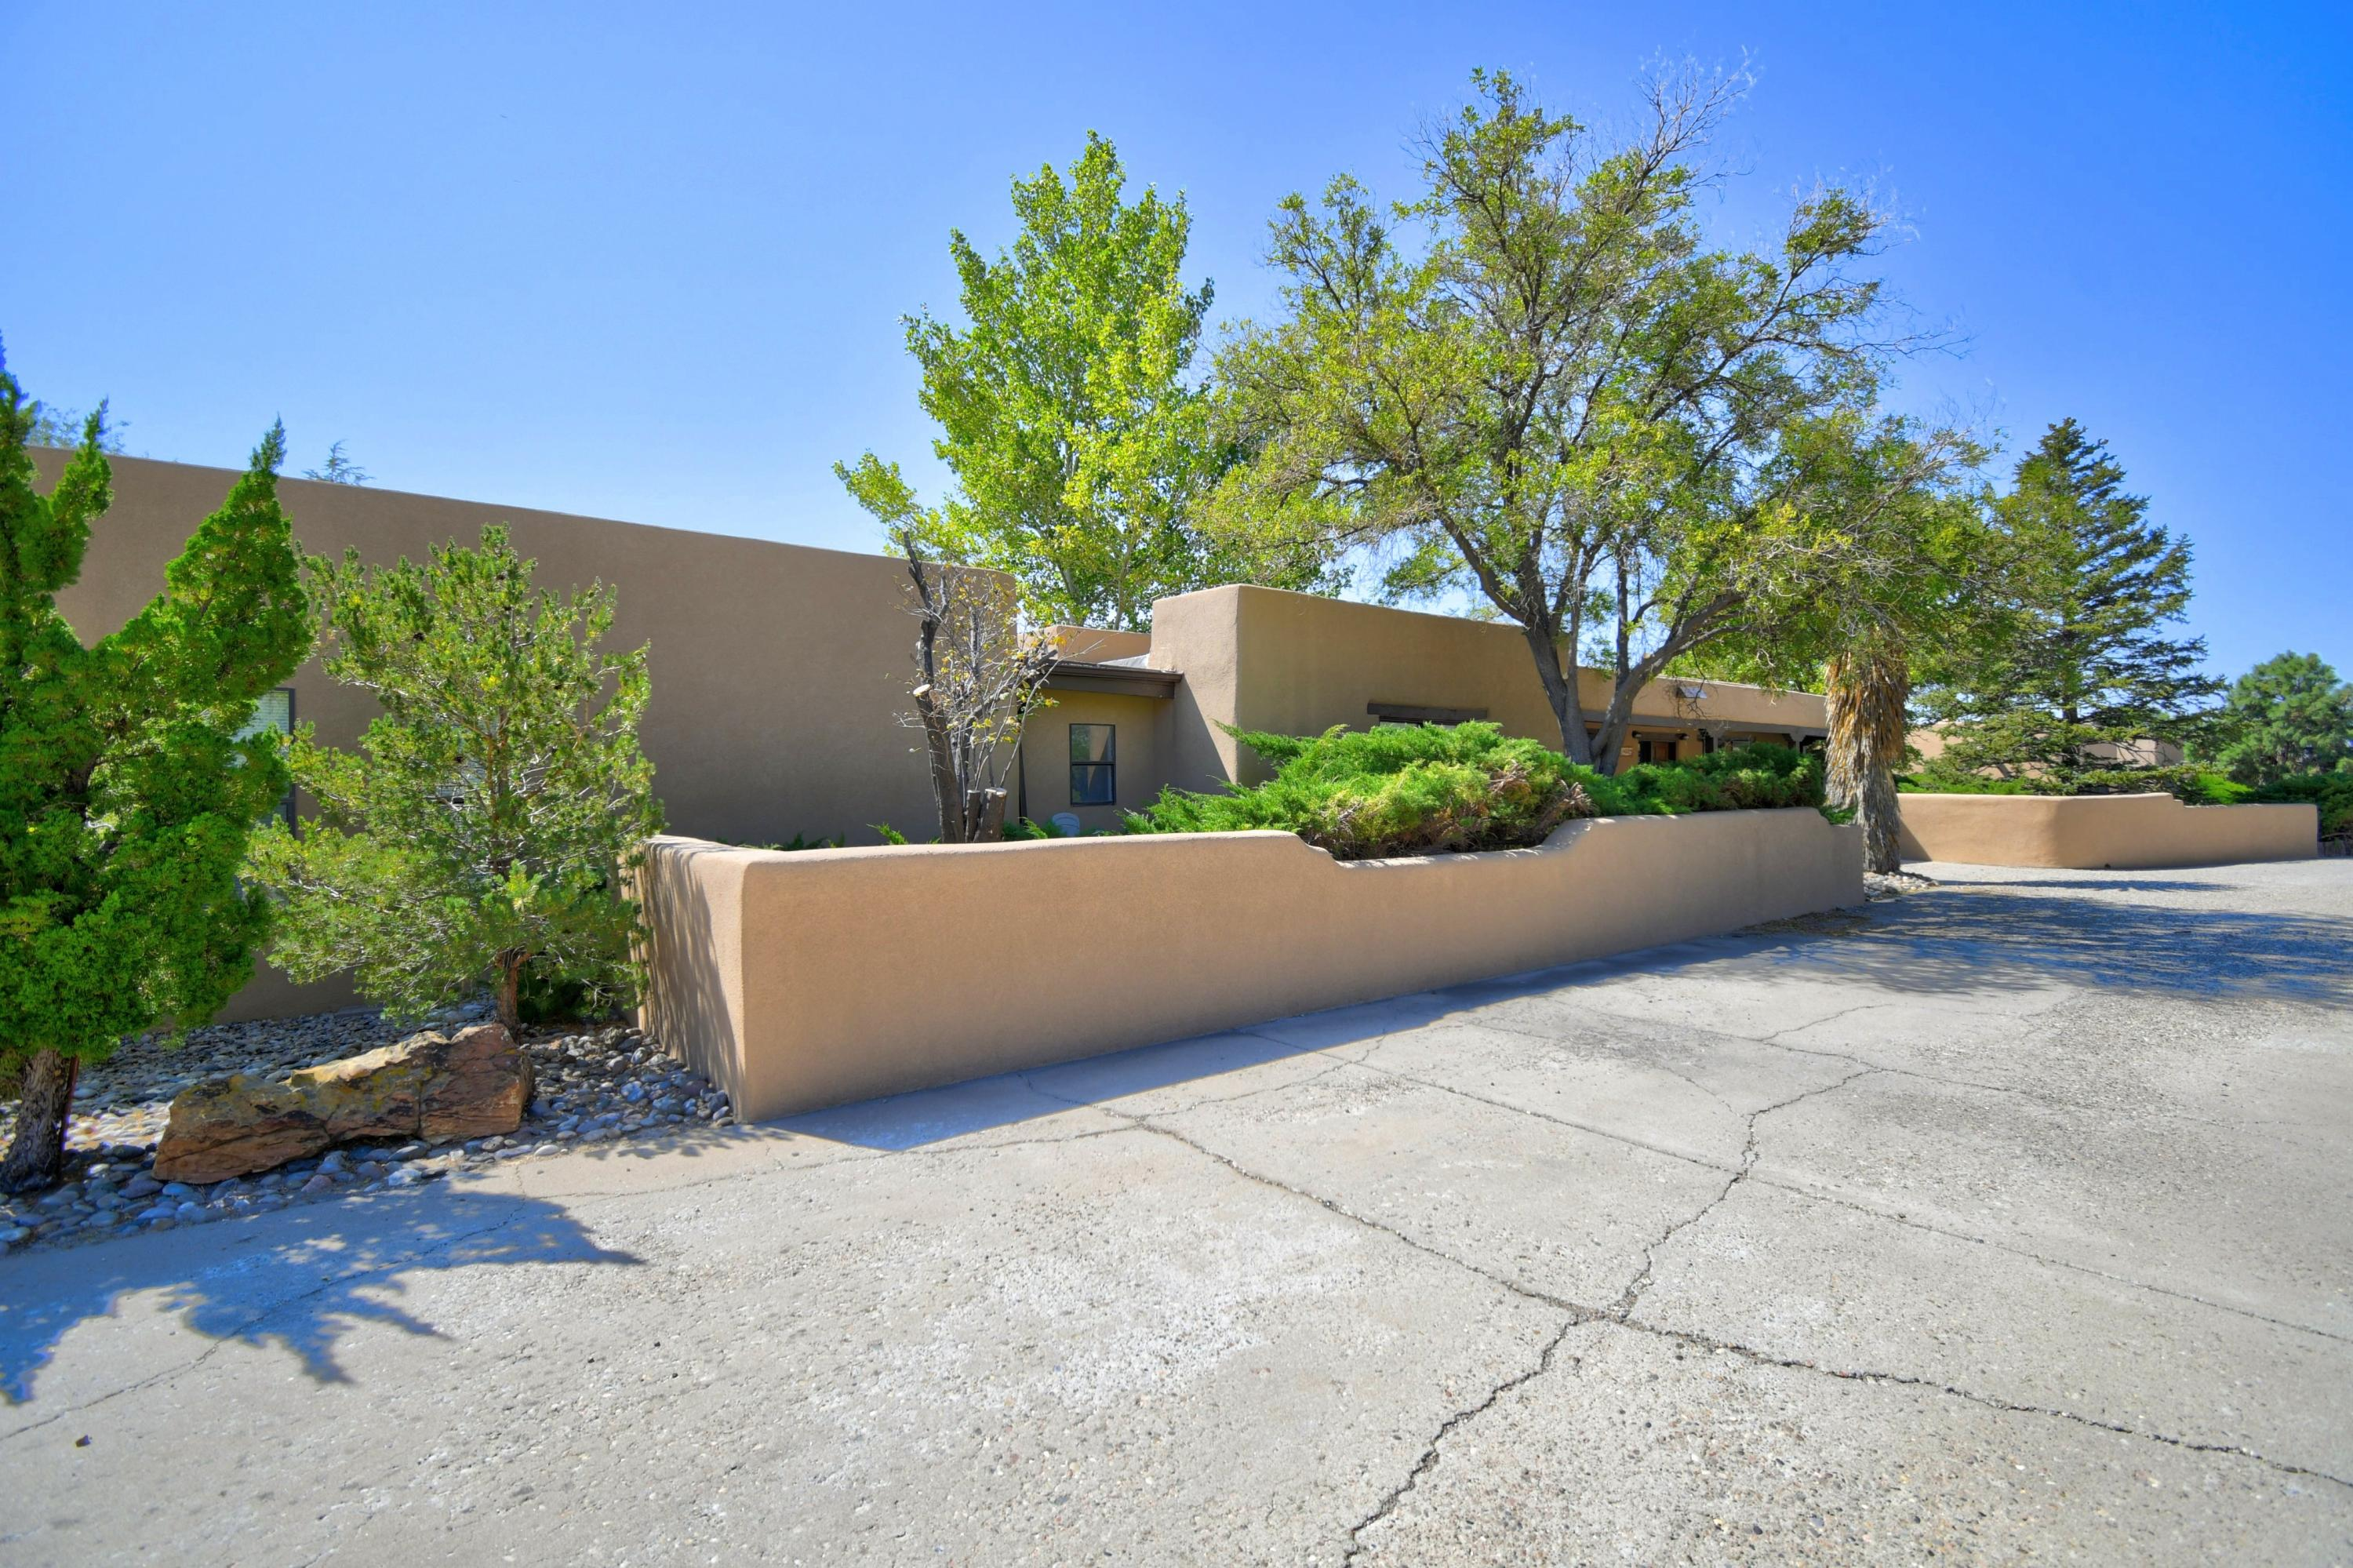 Located in the foothills with easy access to I-40, this beautiful adobe home features 6 bedrooms and 6 bathrooms, has all brick floors, wood beam ceilings and beautiful Mexican tile countertops for a warm and unique home. A private yard complete with a waterfall feature pouring into the sparkling pool, is completely secluded with mature landscaping and walled backyard. Multiple, cozy living spaces provide the option for an in-law suite or multigenerational living. An oversized garage and large workshop, a great amount of room and more storage on the side. Kitchen has stainless steel appliances and a distinctive wood burning fireplace. Living and dining room flow together with a kiva fireplace, natural light and cozy, yet spacious living. renovated by two architects. MUST SEE